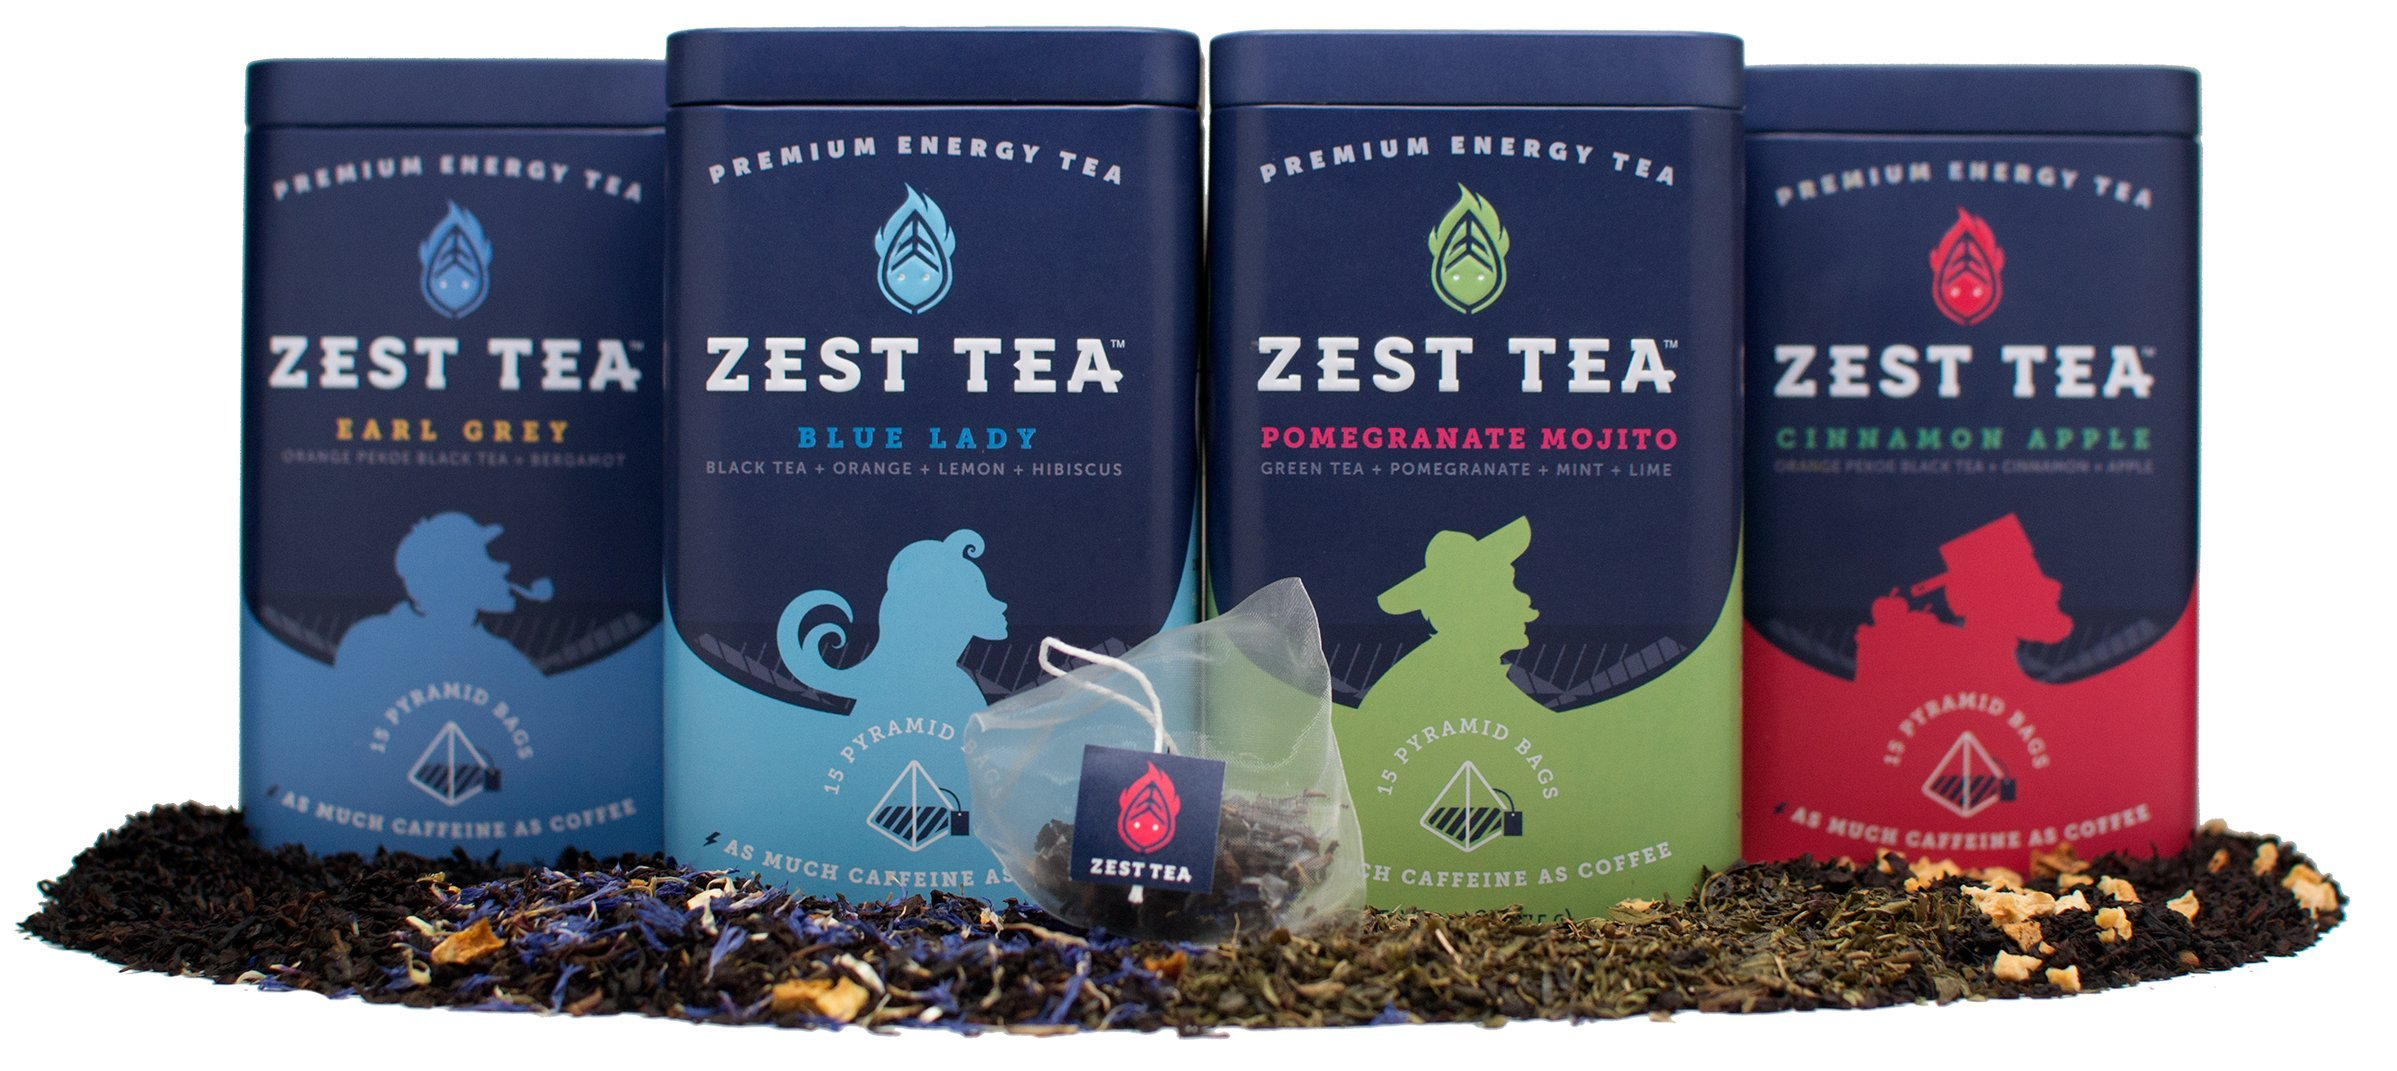 Zest Tea Premium Energy Hot Tea Sampler Kit, High Caffeine Blend Natural & Healthy Coffee Substitute, Perfect for Keto, Apple Cinnamon, Blue Lady, Earl Grey, Pomegranate Mojito, 60 Sachet Bags